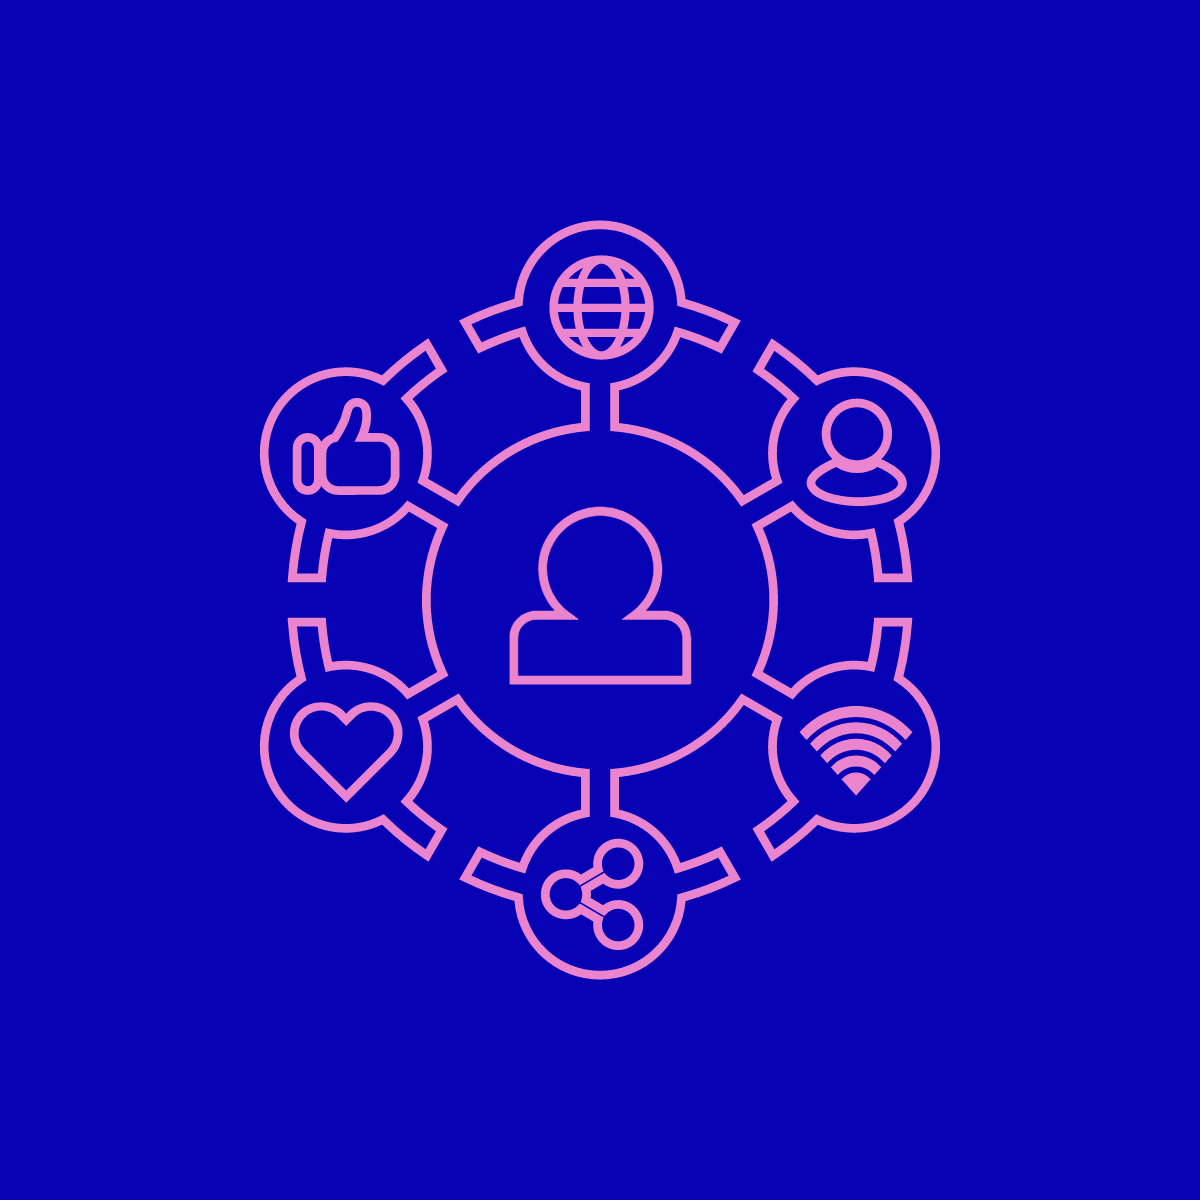 A pink graphic against a blue background showing a person connected to a globe, a heart, a wifi symbol